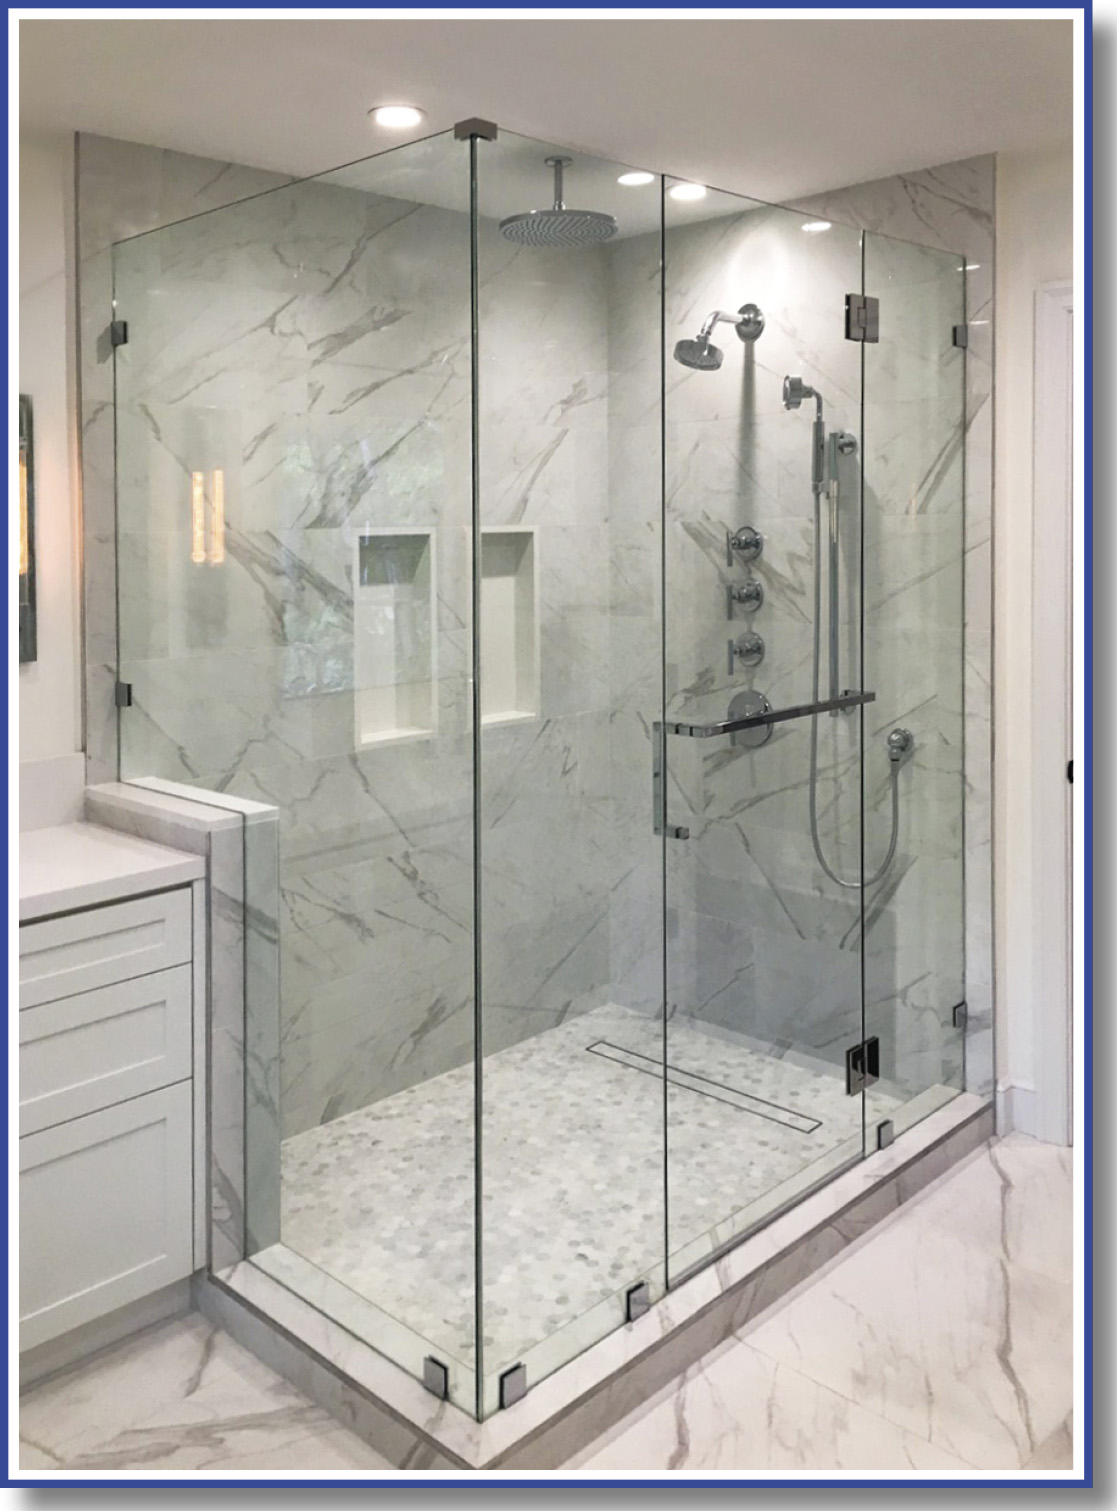 90 degree glass shower with 3 panels